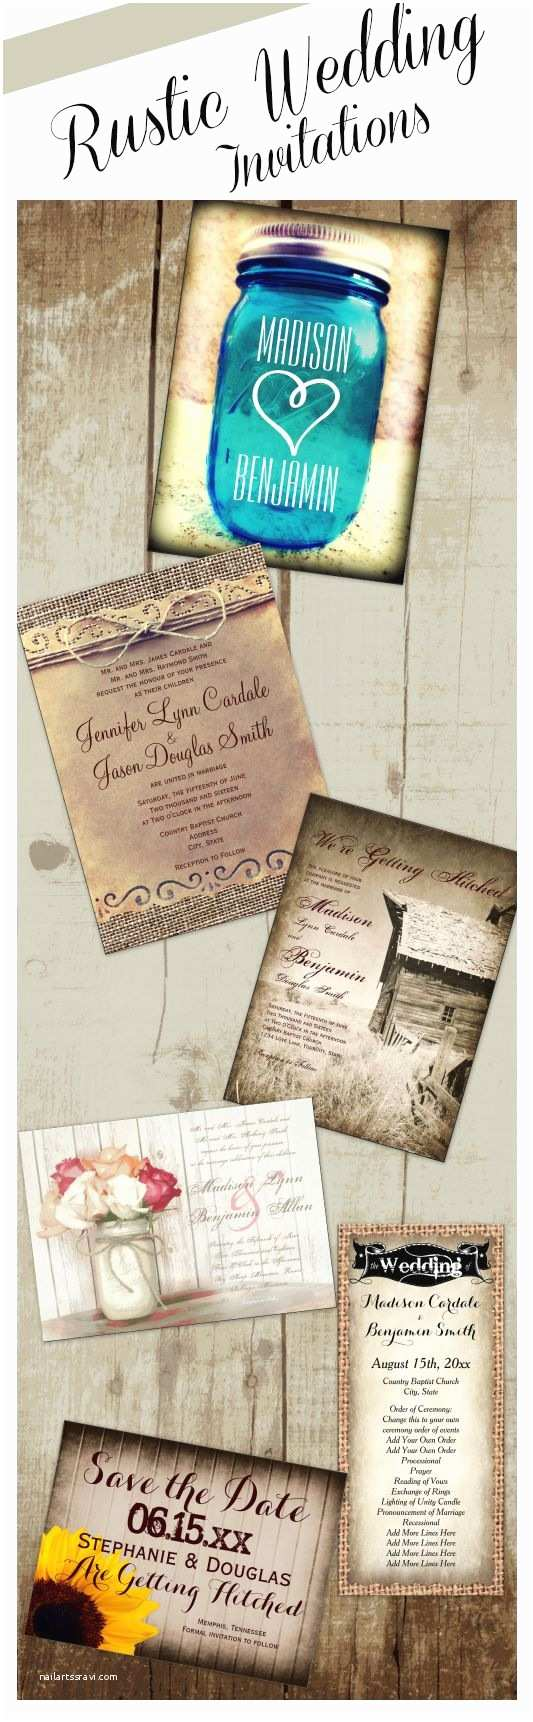 Wedding Invitation Pricing Guide Rustic Wedding Invitations for A Country Style Wedding